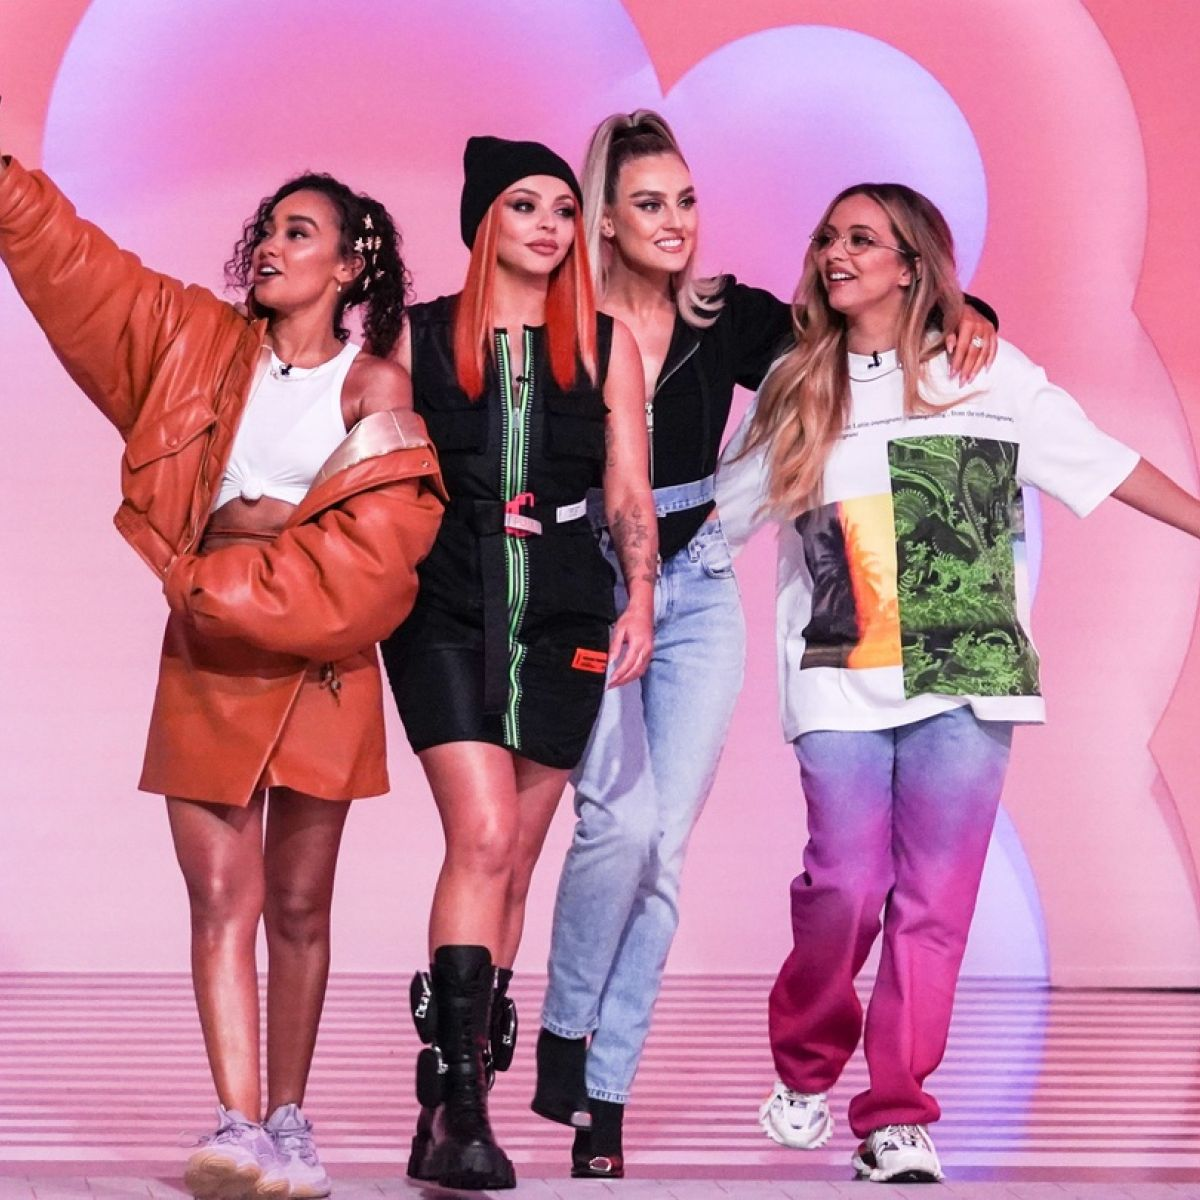 Little Mix continues as a trio group without Jesy Nelson